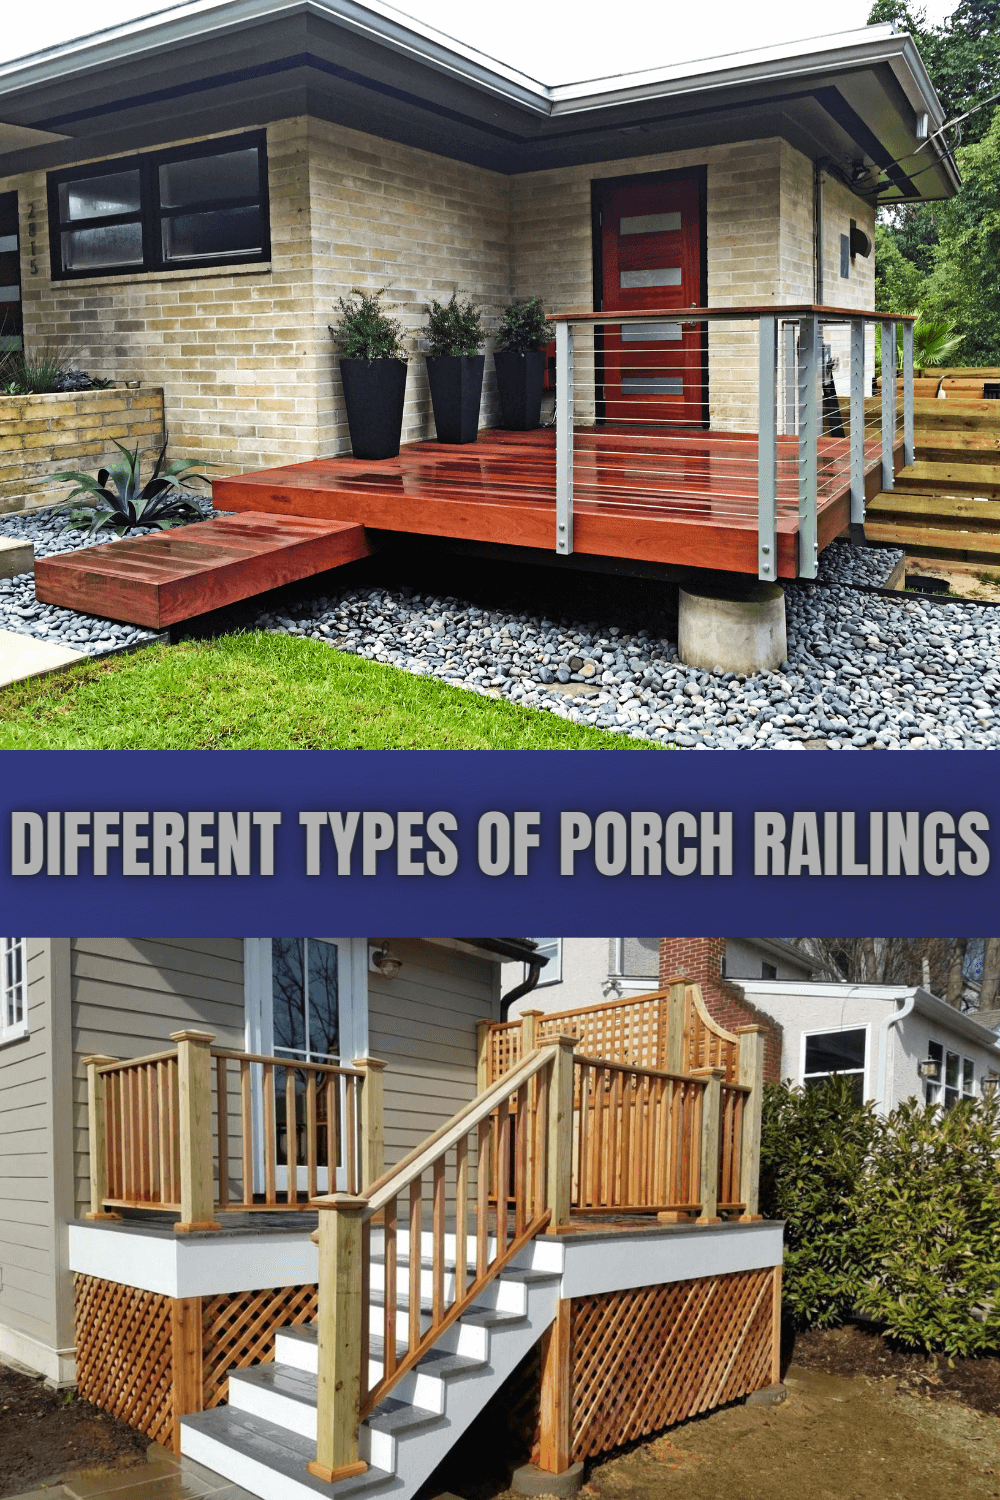 DIFFERENT TYPES OF PORCH RAILINGS